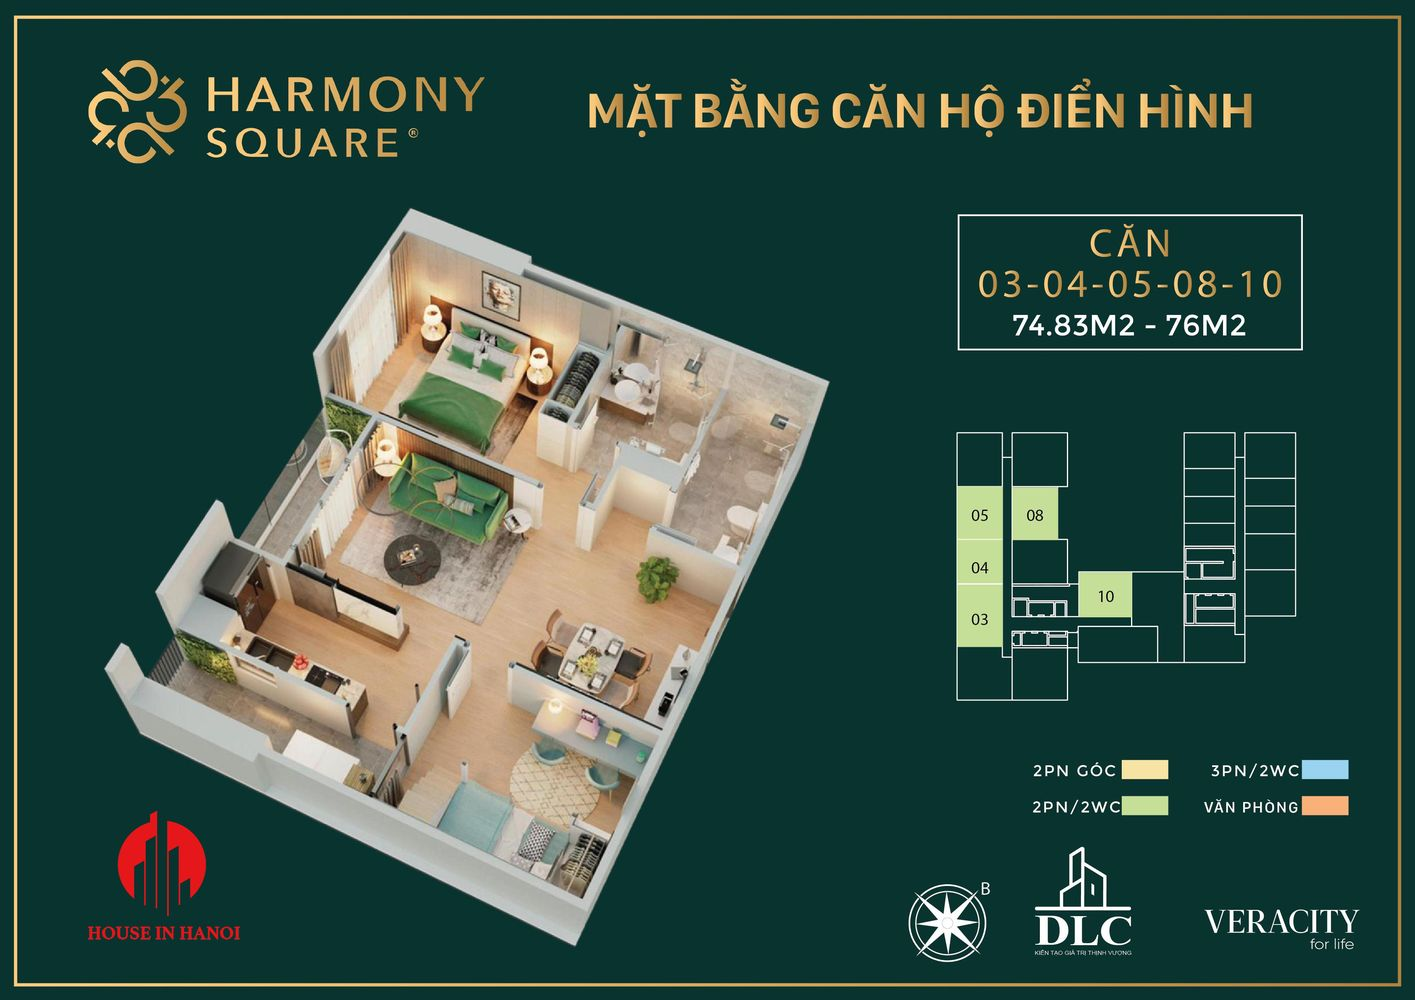 harmony square floor plan 4